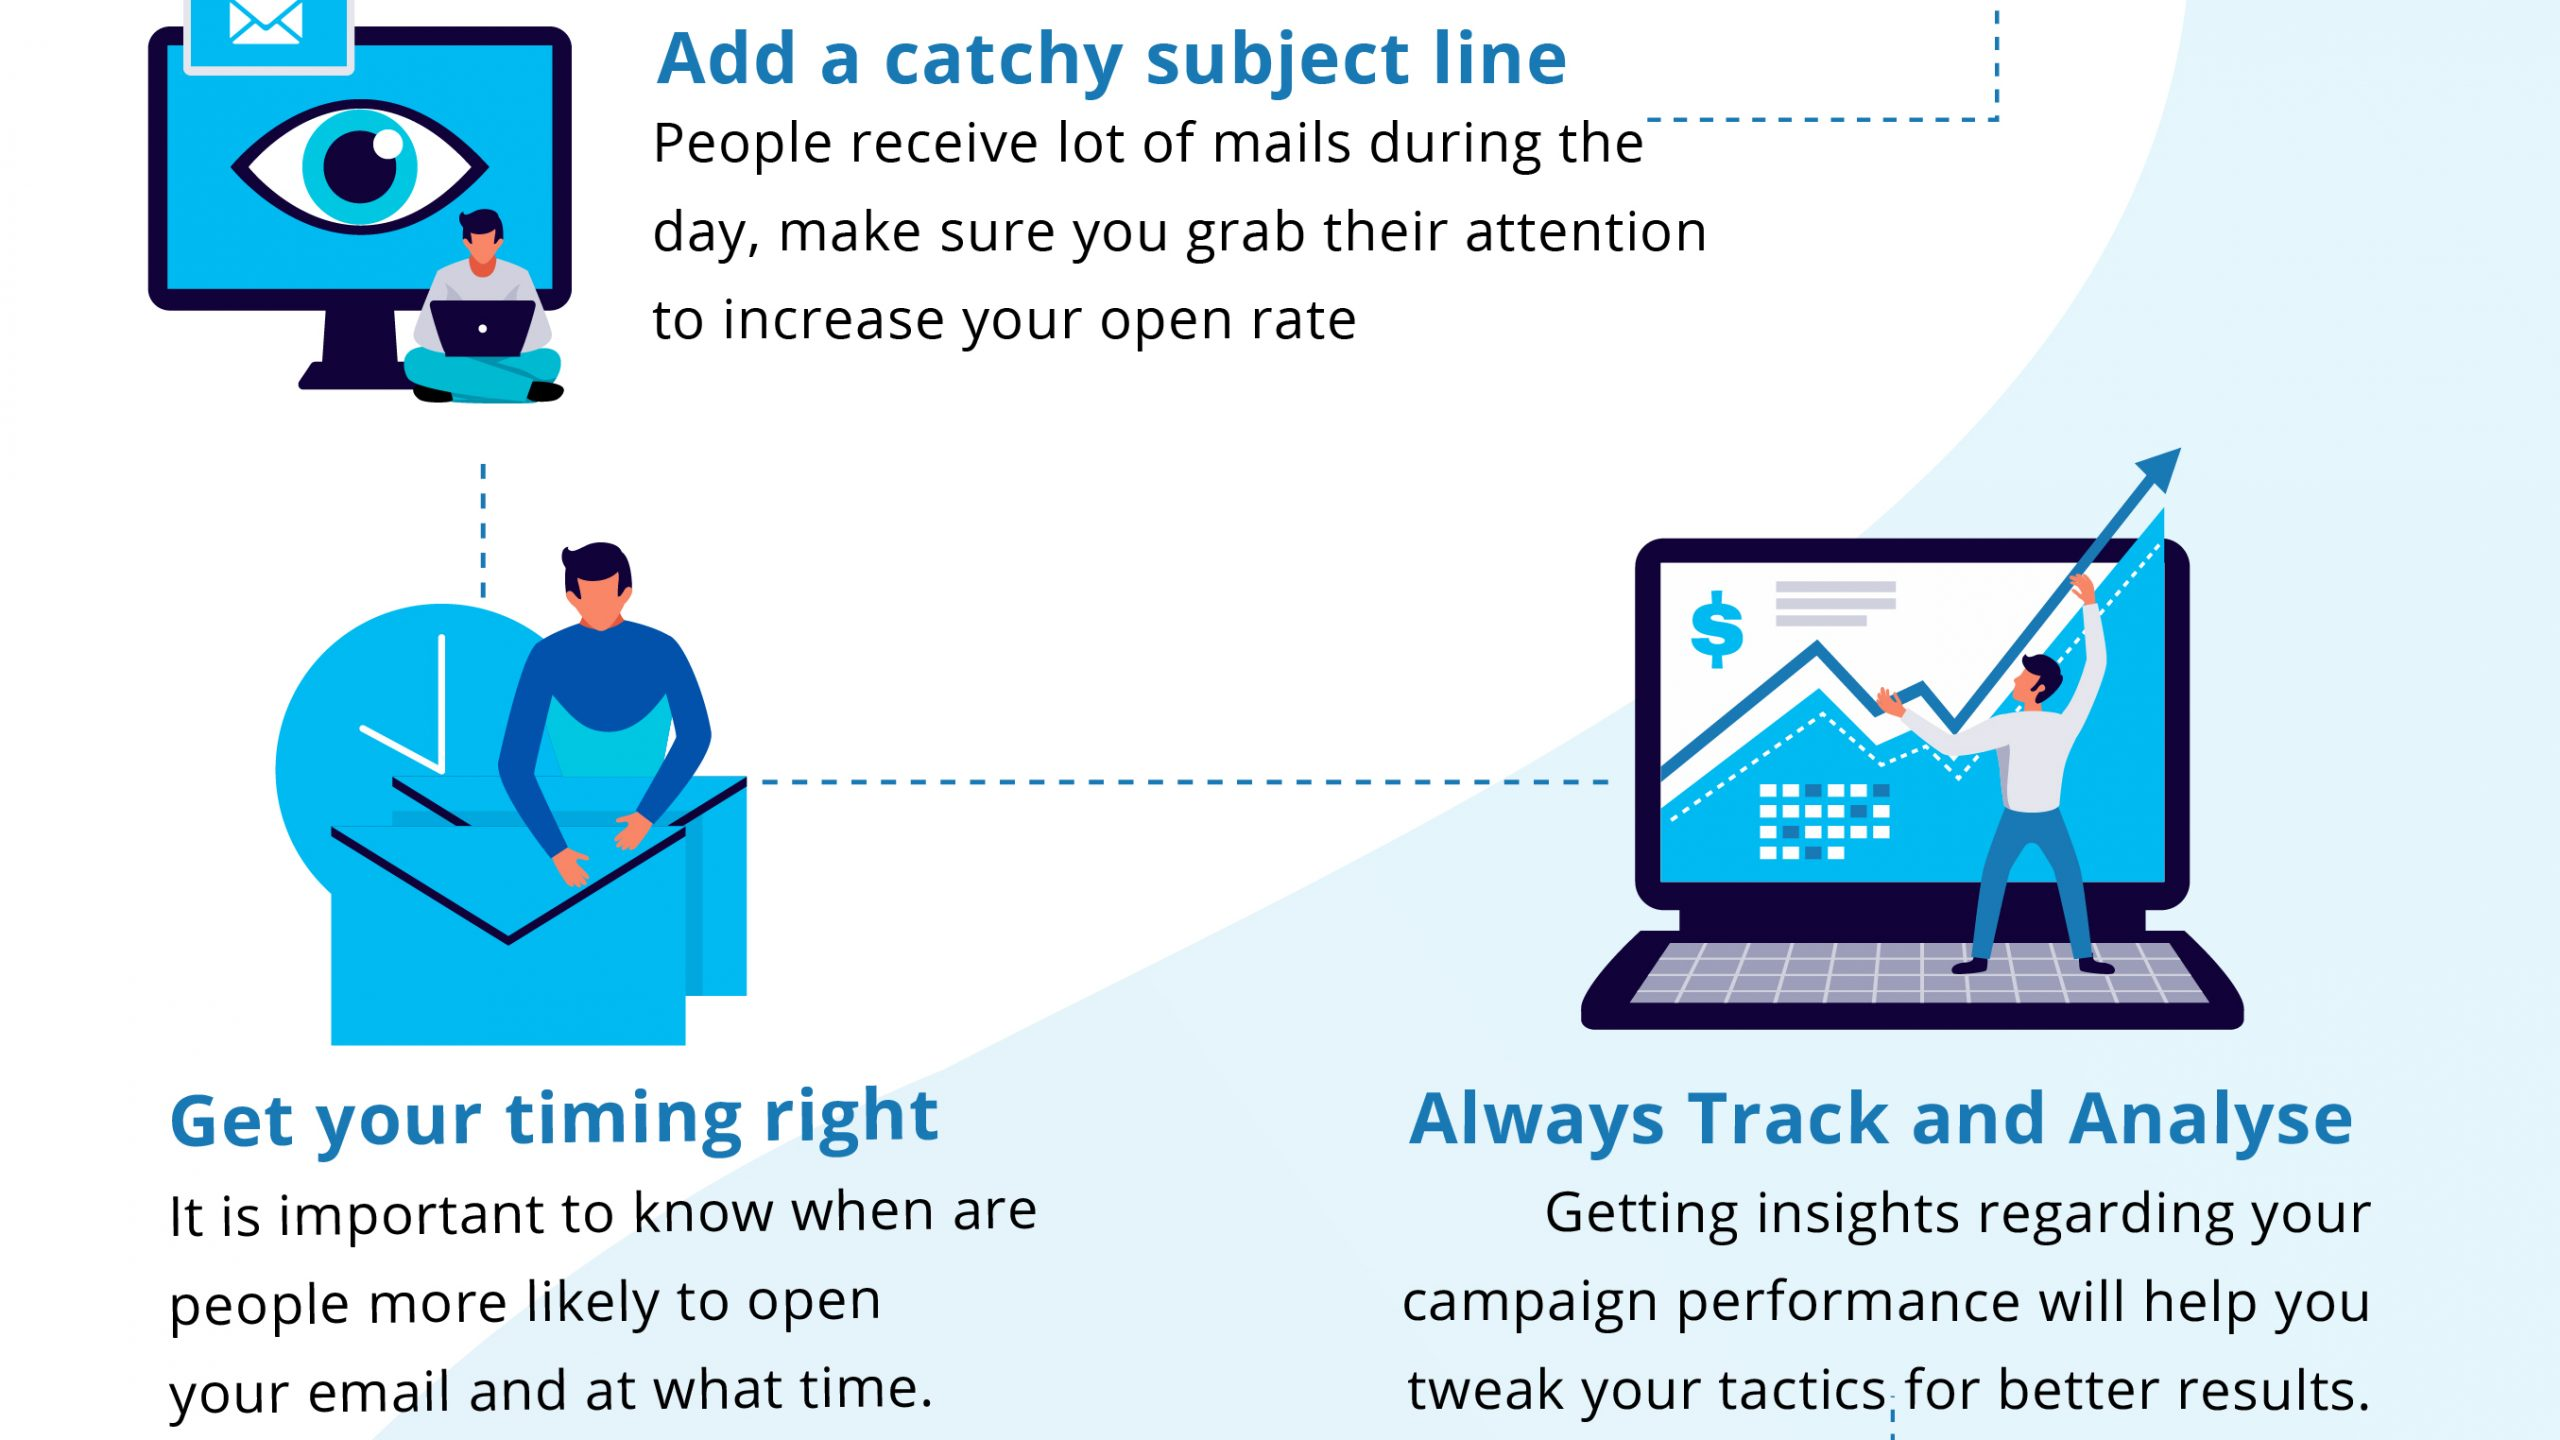 Add a catchy subject line, Get your timing right, Always track and analyse